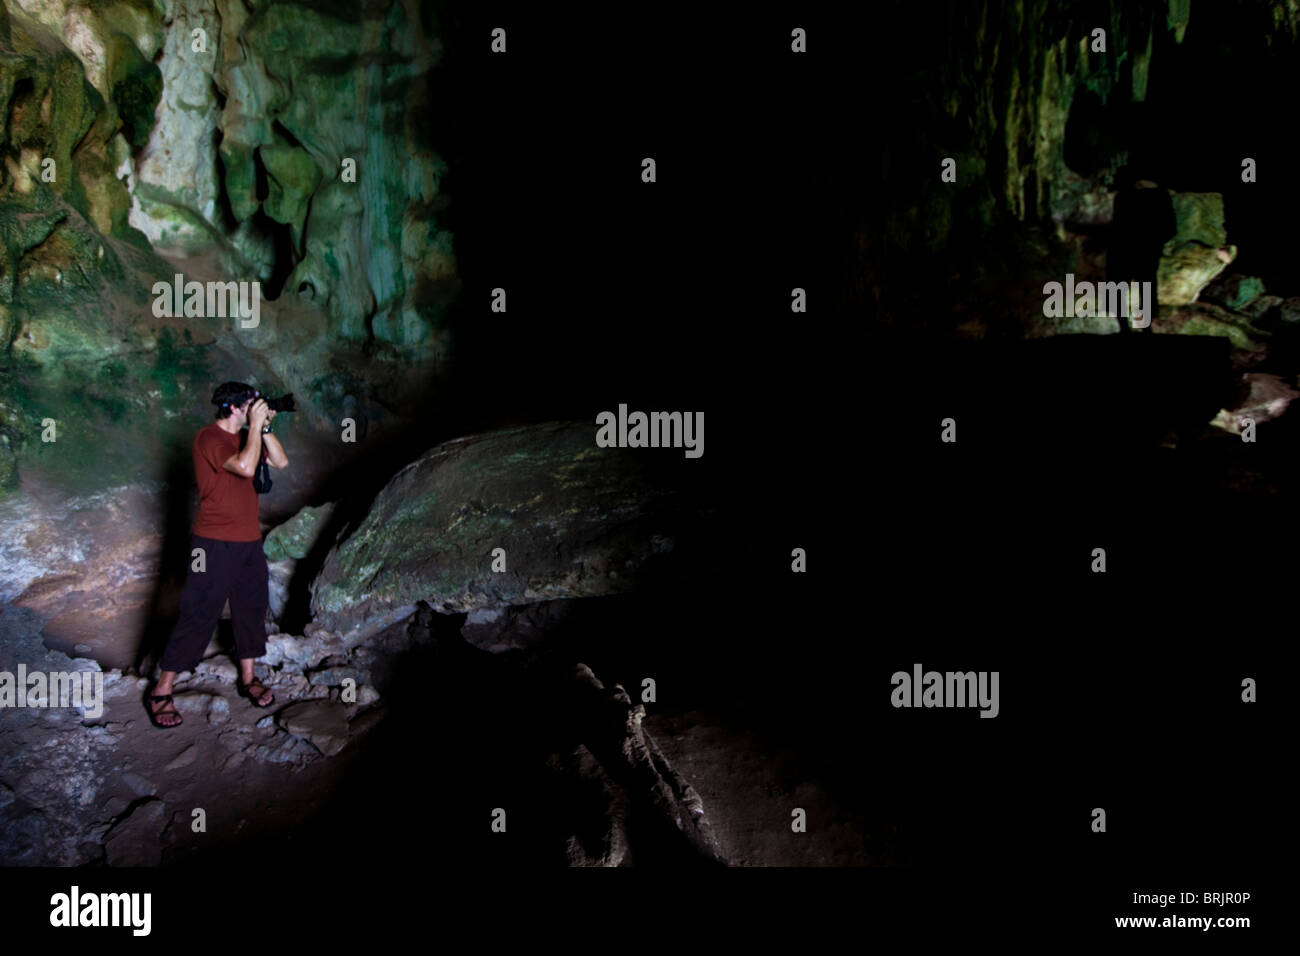 Male photographer shooting a darkened subject in a limestone cave in Thailand. - Stock Image